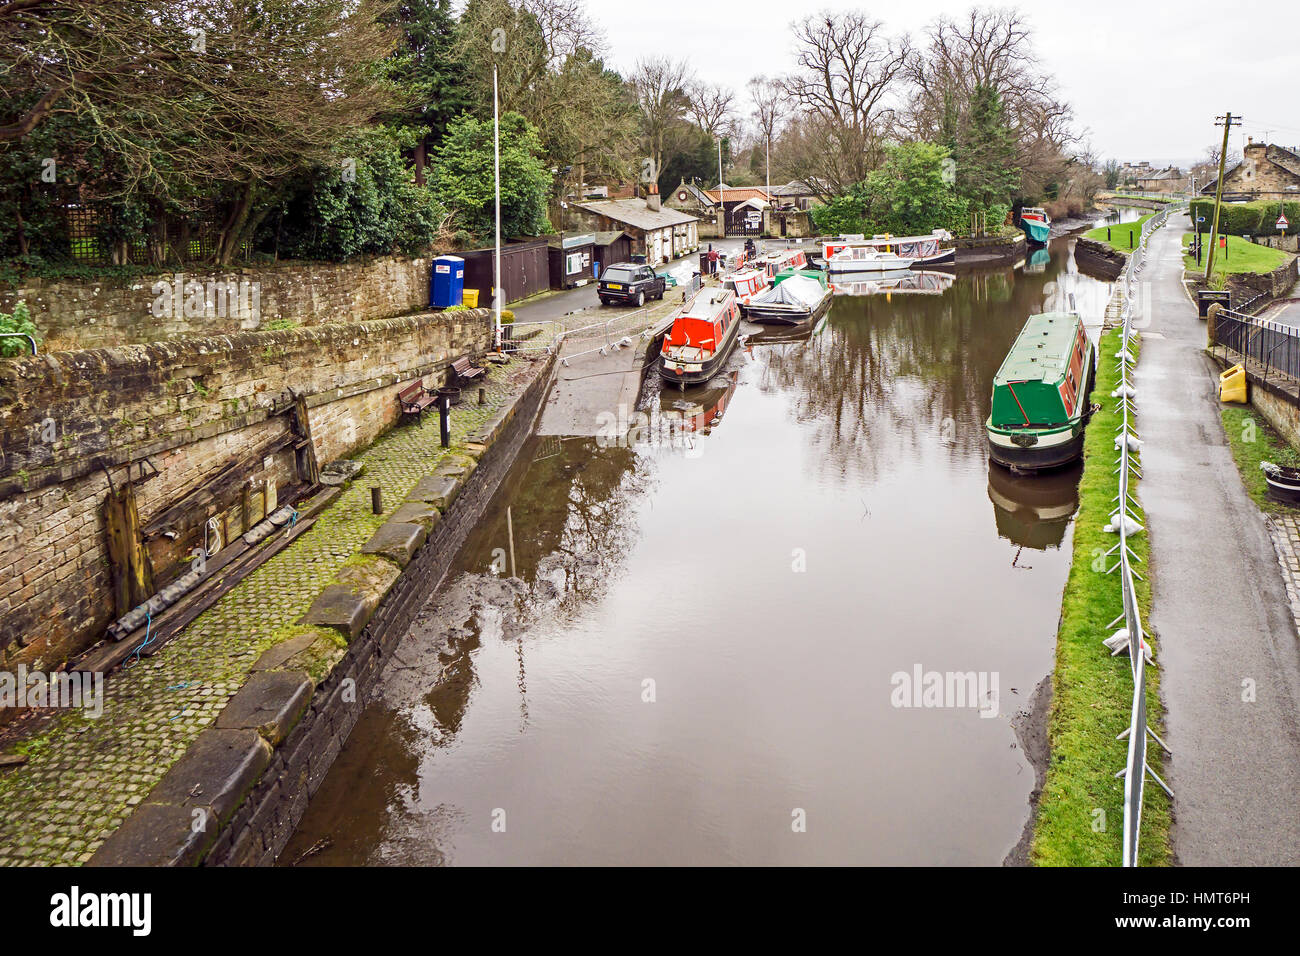 The Union Canal at Linlithgow canal basin in Linlithgow Scotland after being drained by Scottish Canals for maintenance - Stock Image